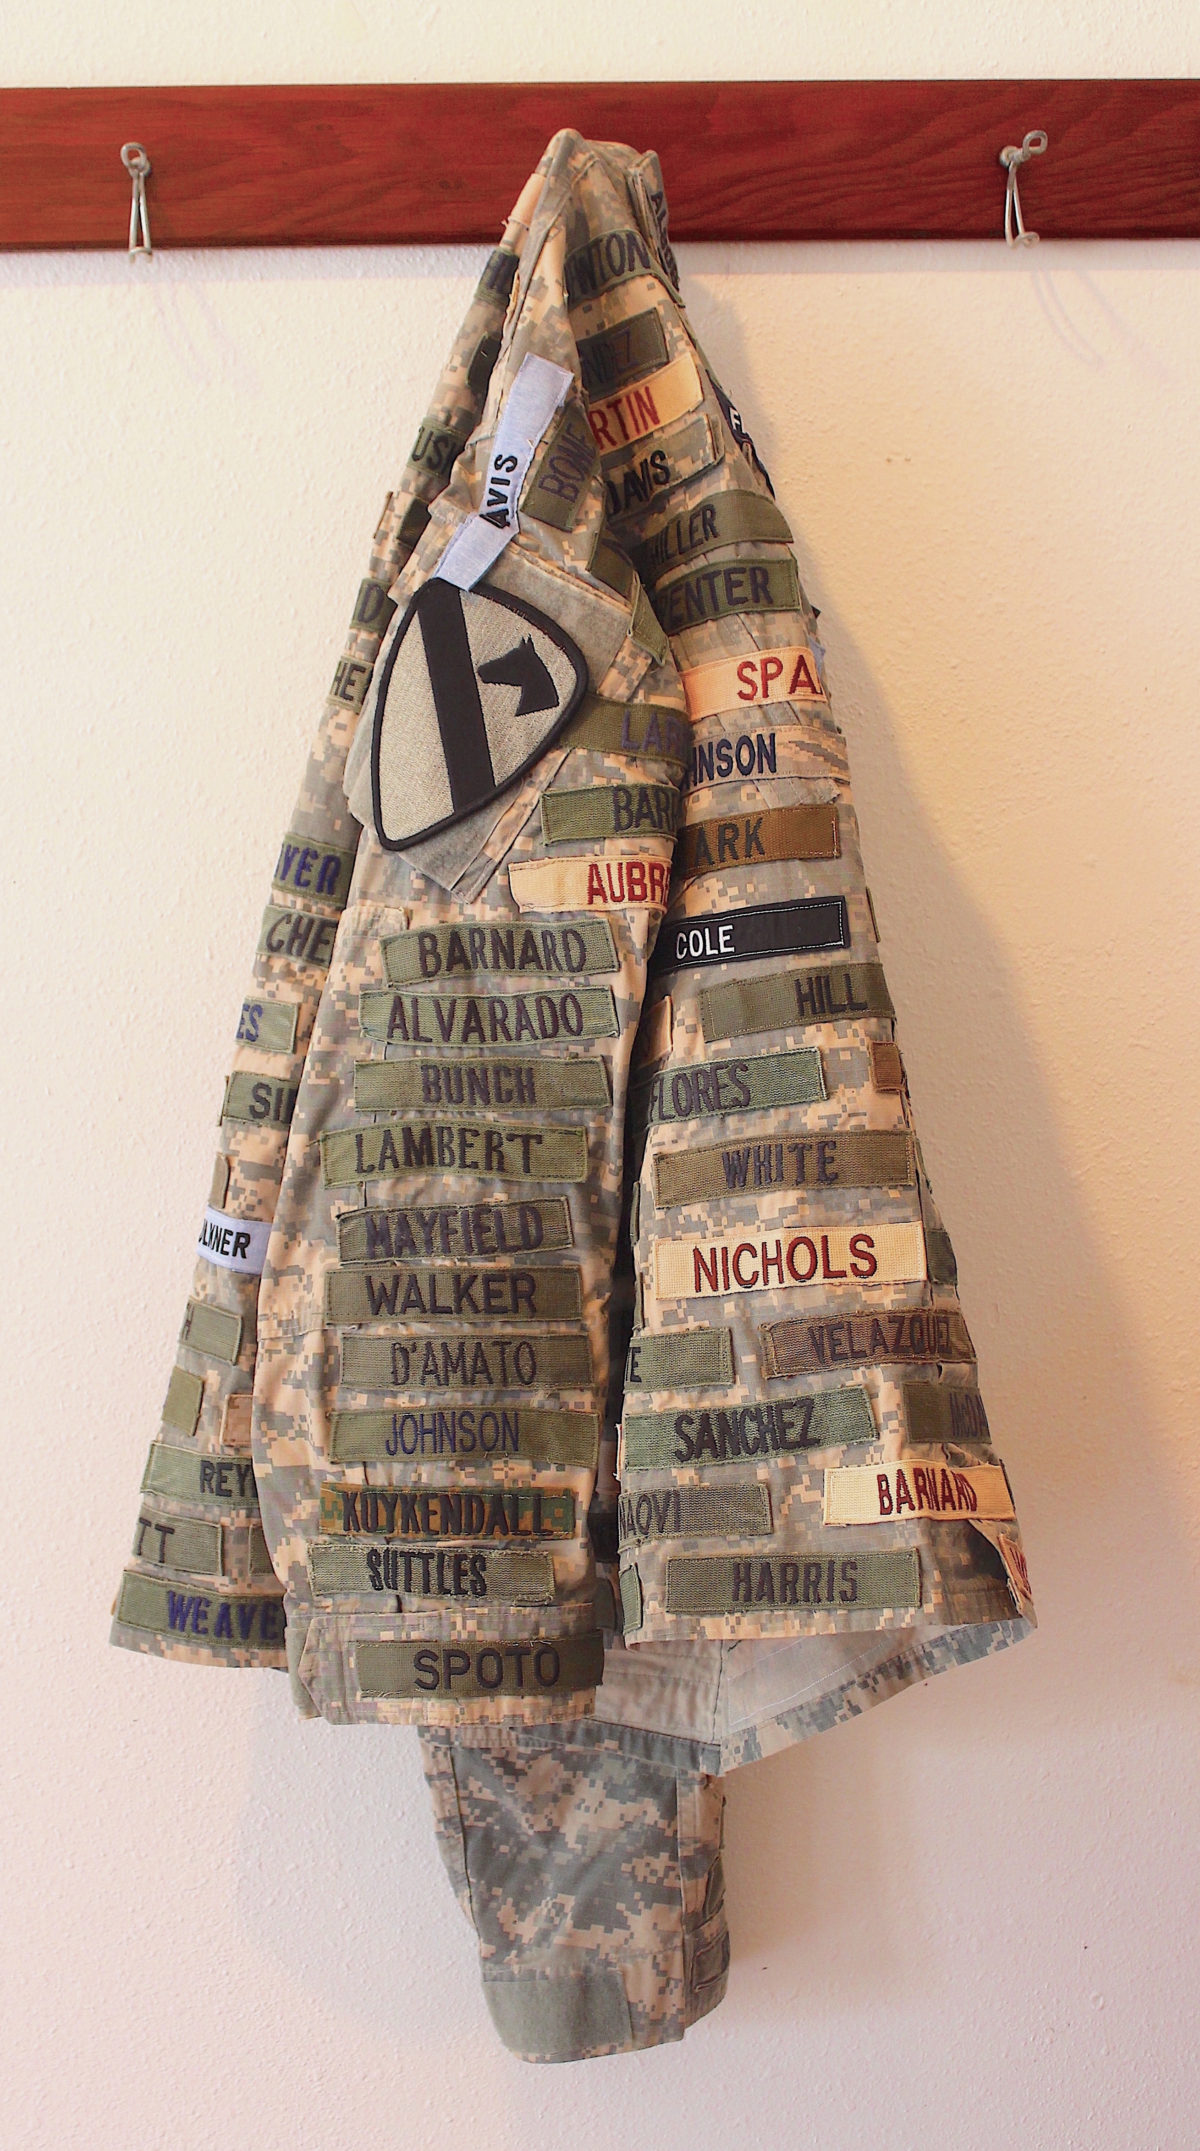 Soldier's Jacket, Mixed Media, Maria-Cristina Jadick